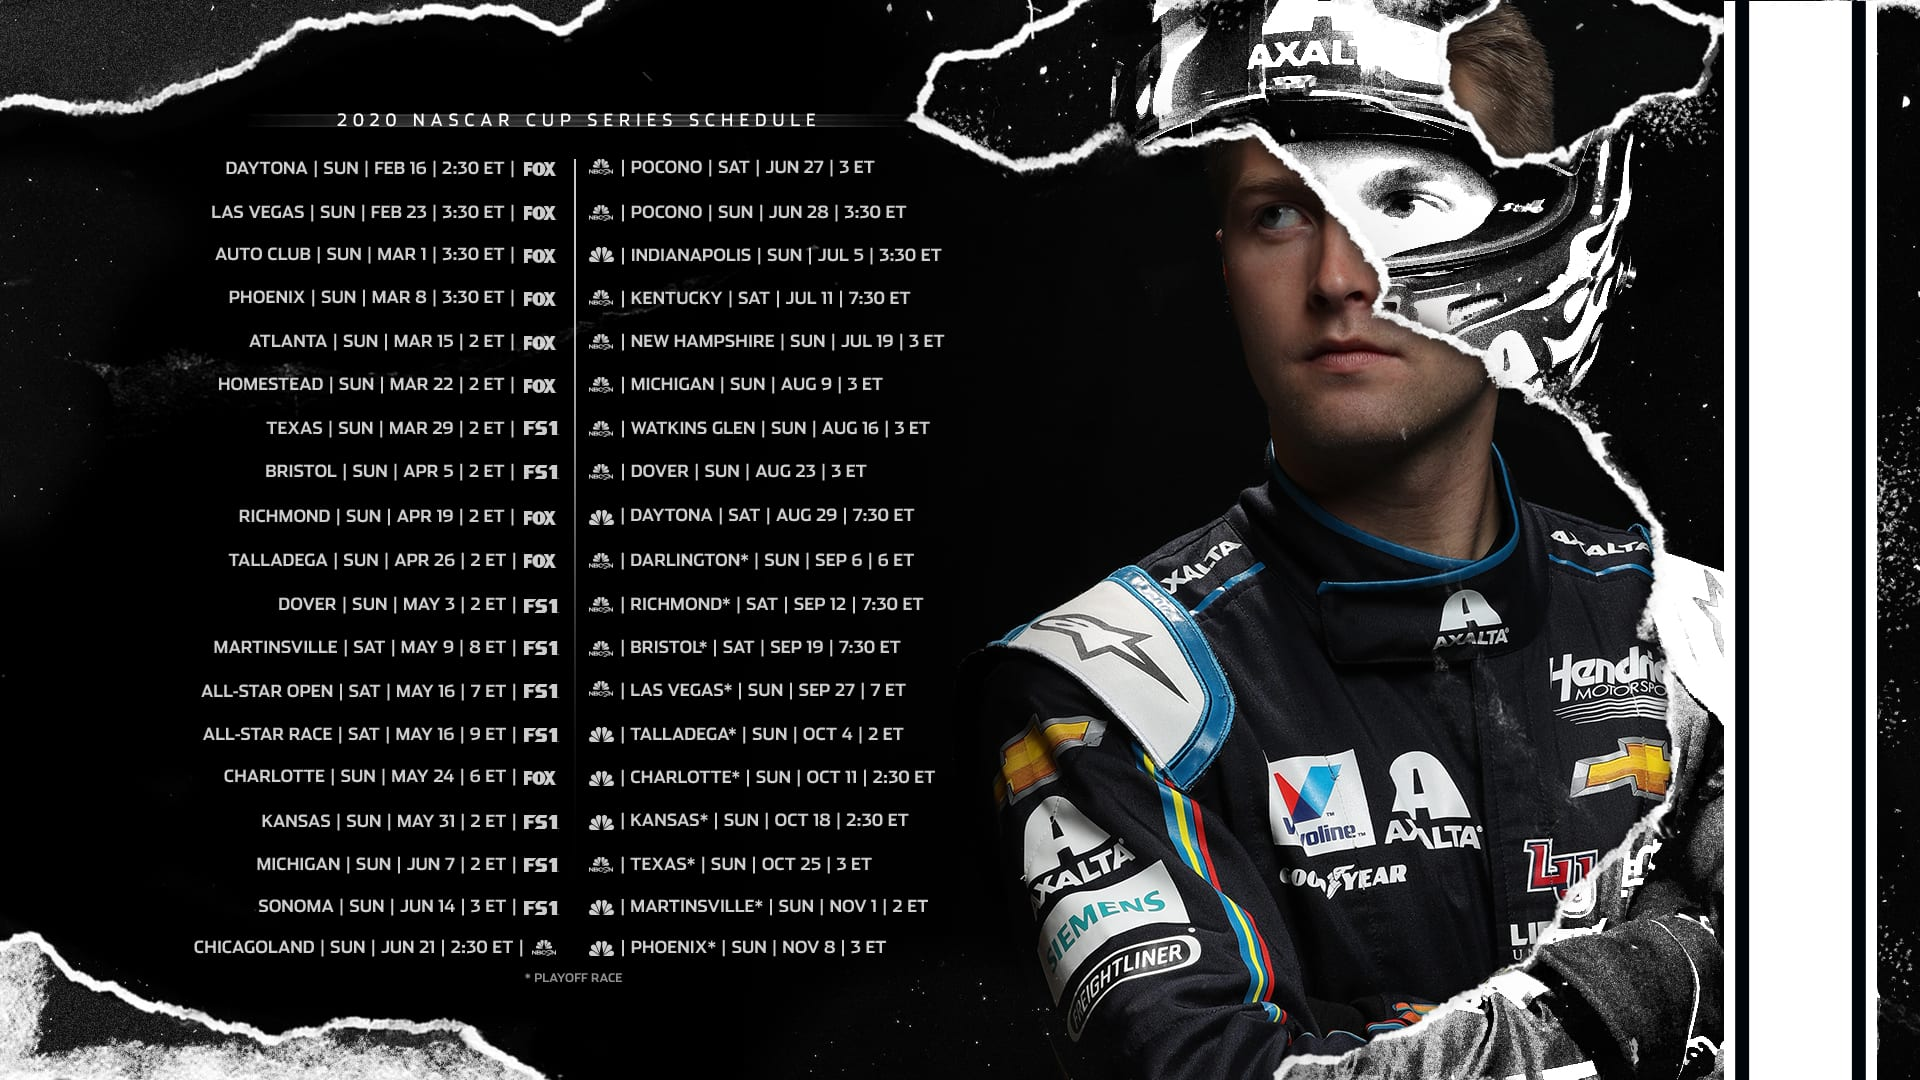 2020 NASCAR Wallpapers Official Site Of NASCAR 1920x1080